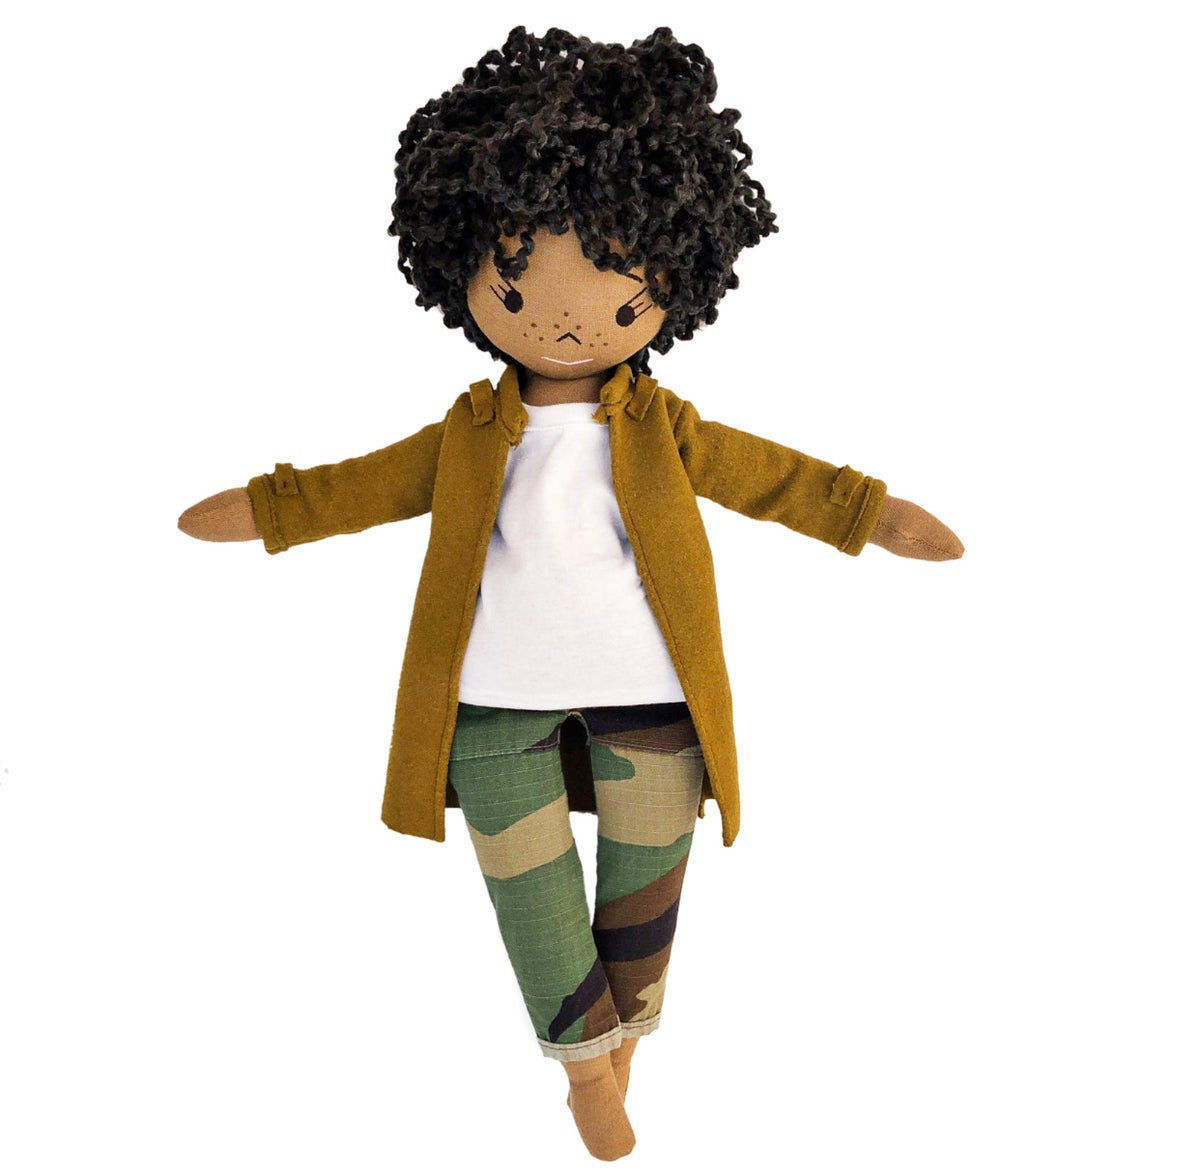 Leila Handmade More to Love Doll (PLEASE NOTE: THIS ITEM WILL SHIP IN 30 - 45 BUSINESS DAYS).